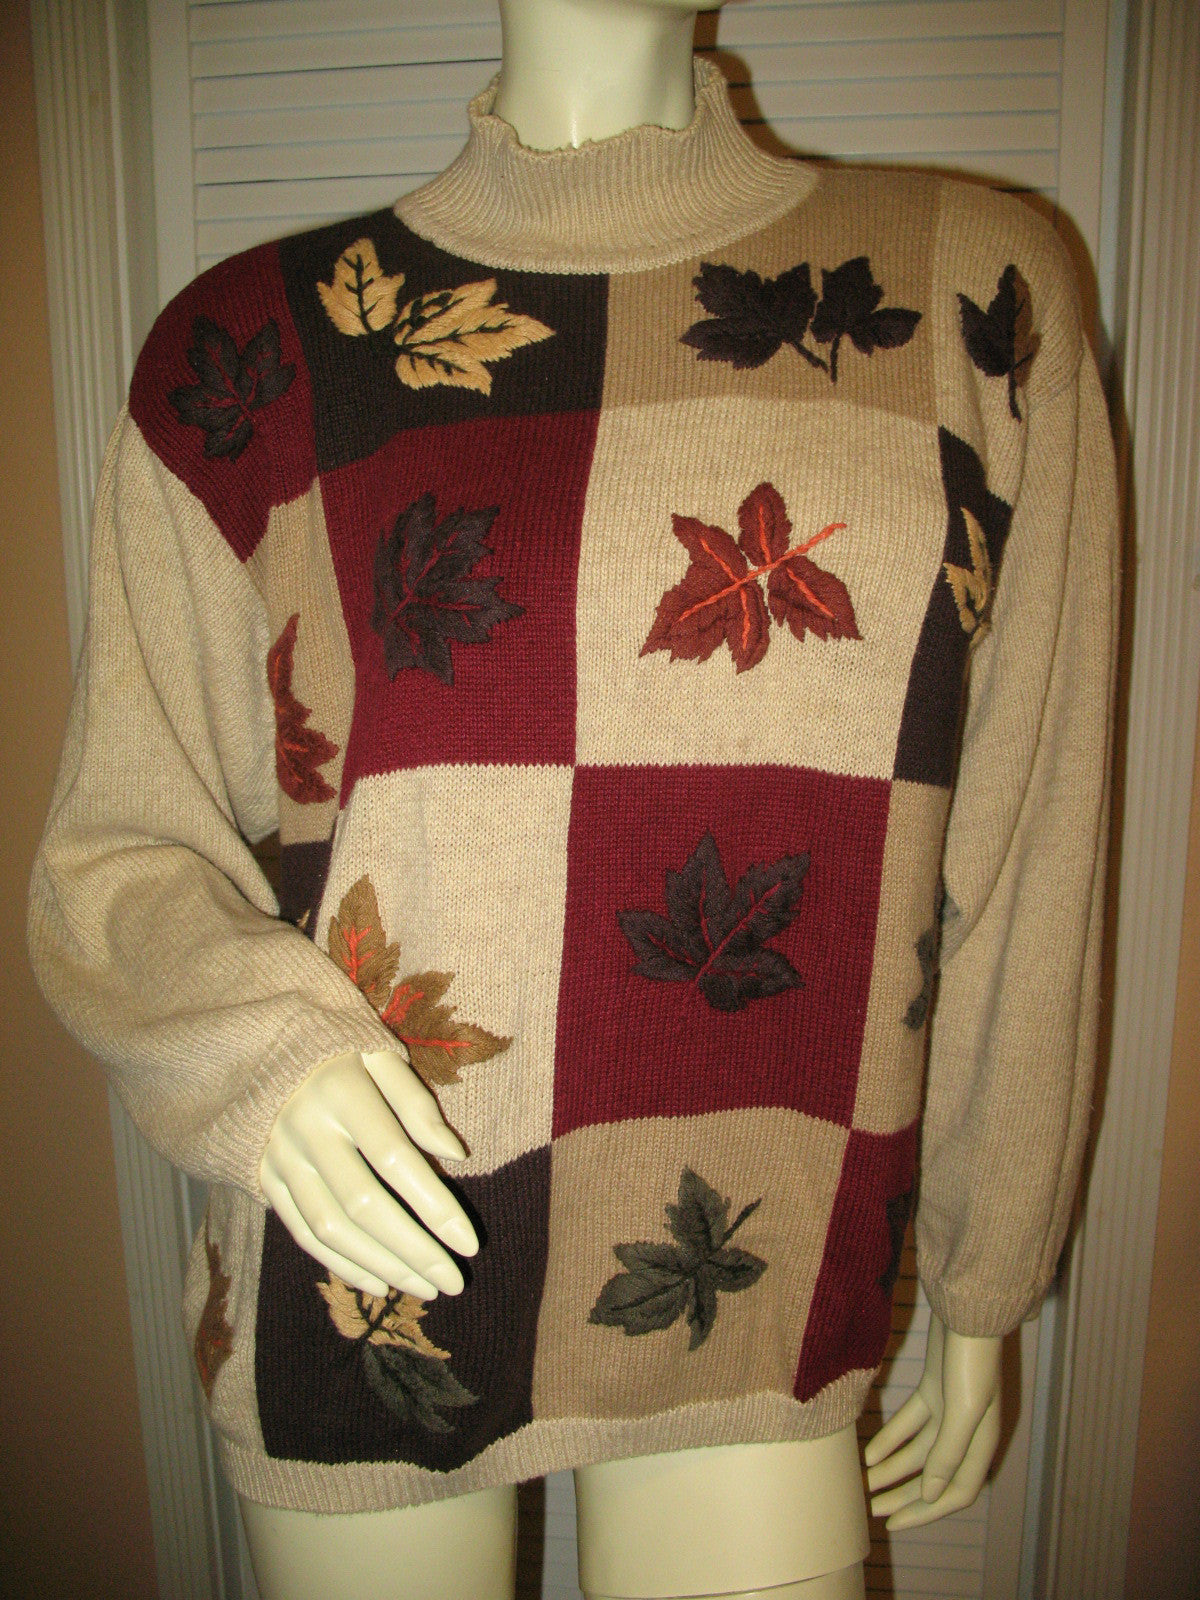 27a33525f0e DRESSBARN Womens Sweaters Pullover Crew Neck Turtleneck Knit Sweater Top  Long Sleeve Size 18 20 Beige Multicolor Fall Embroidery Floral